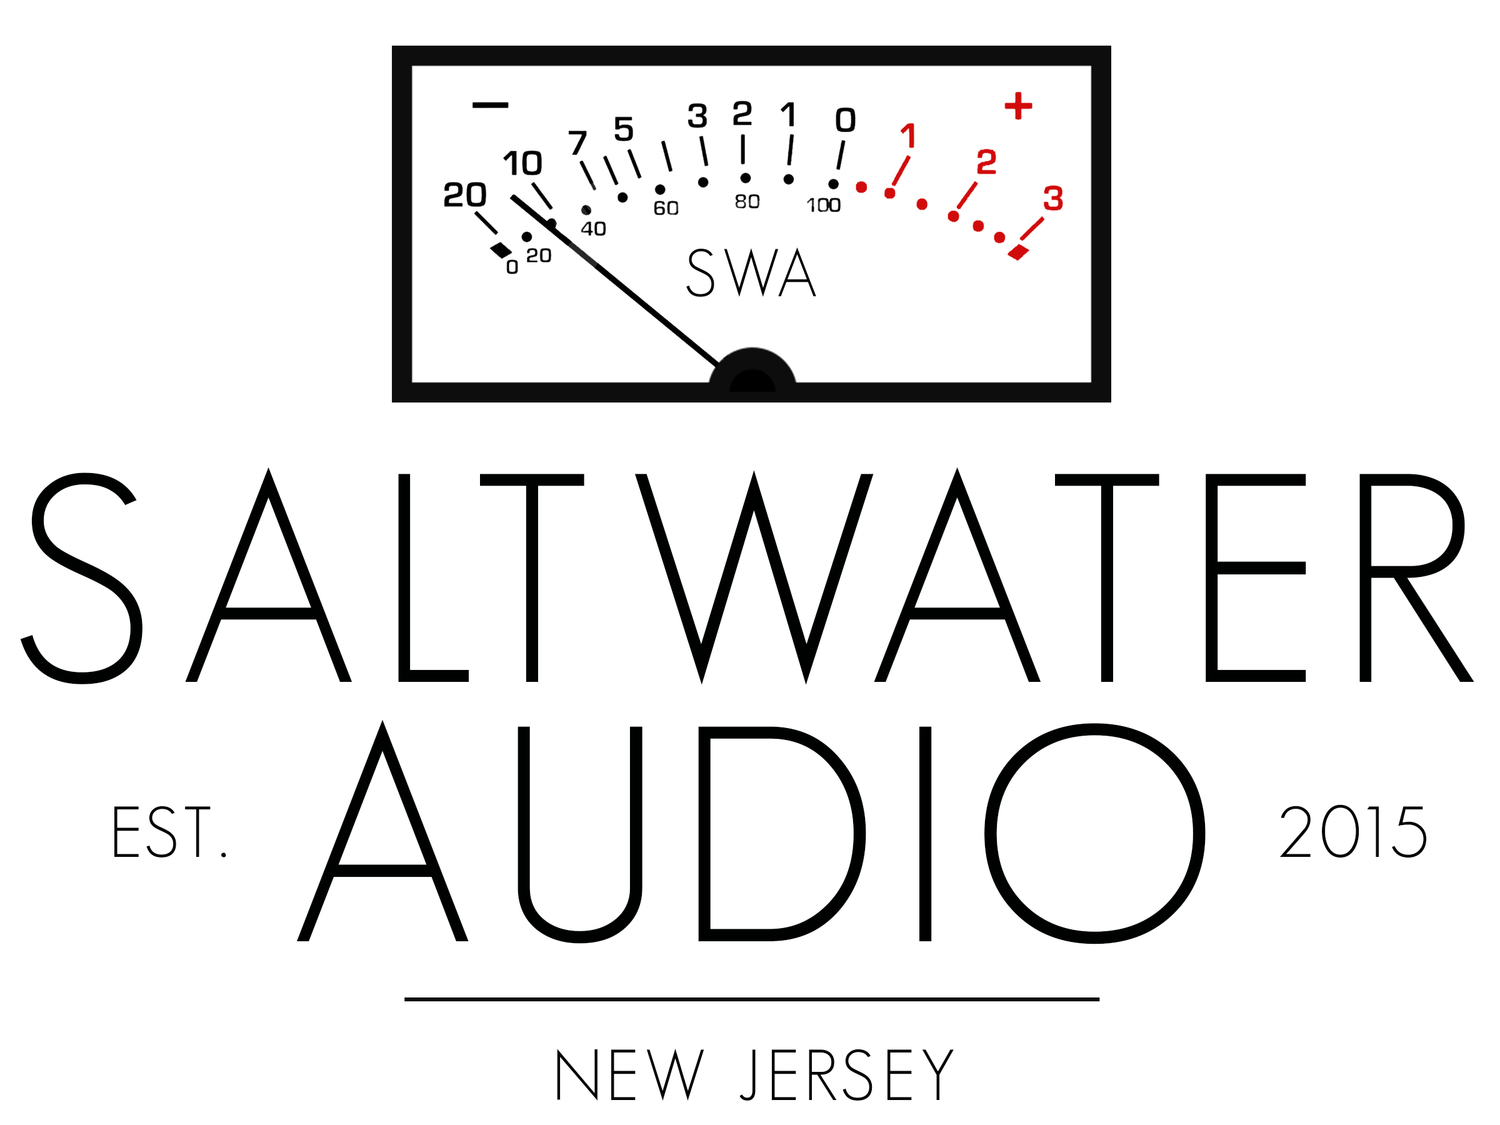 Saltwater Audio